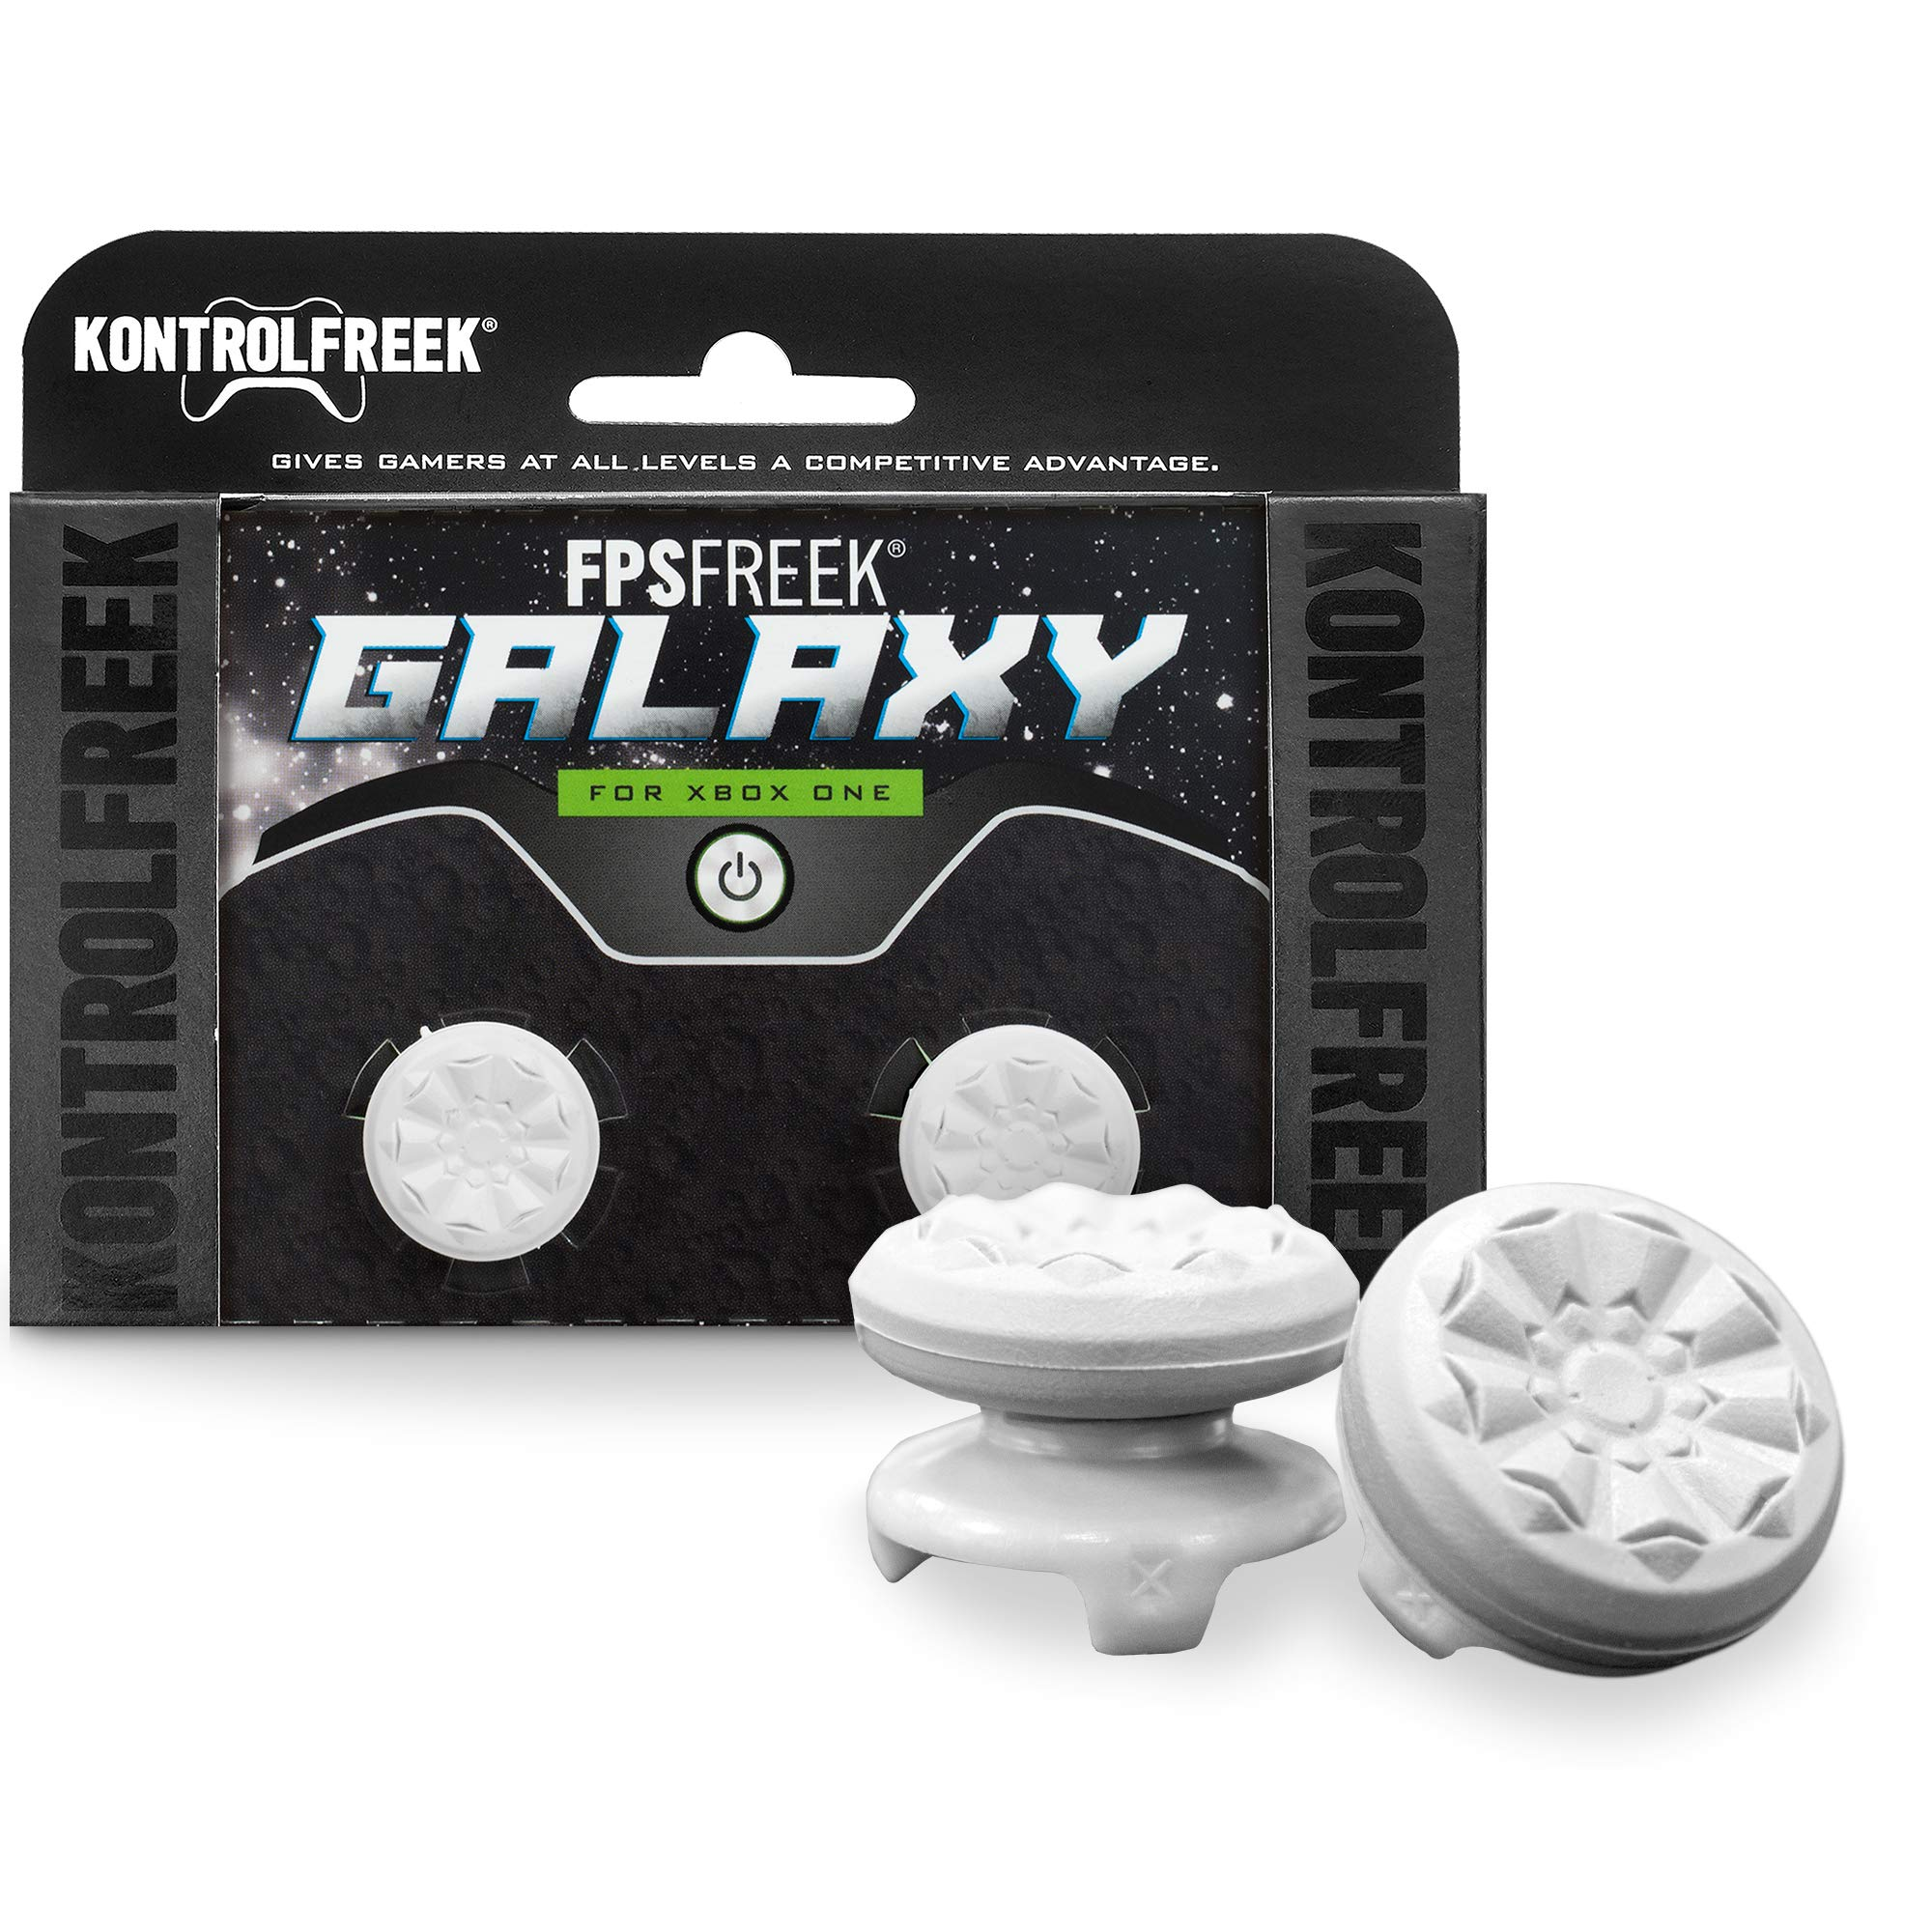 KontrolFreek FPS Freek Galaxy White for Xbox One Controller | Performance Thumbsticks | 1 High-Rise, 1 Mid-Rise | White by KontrolFreek